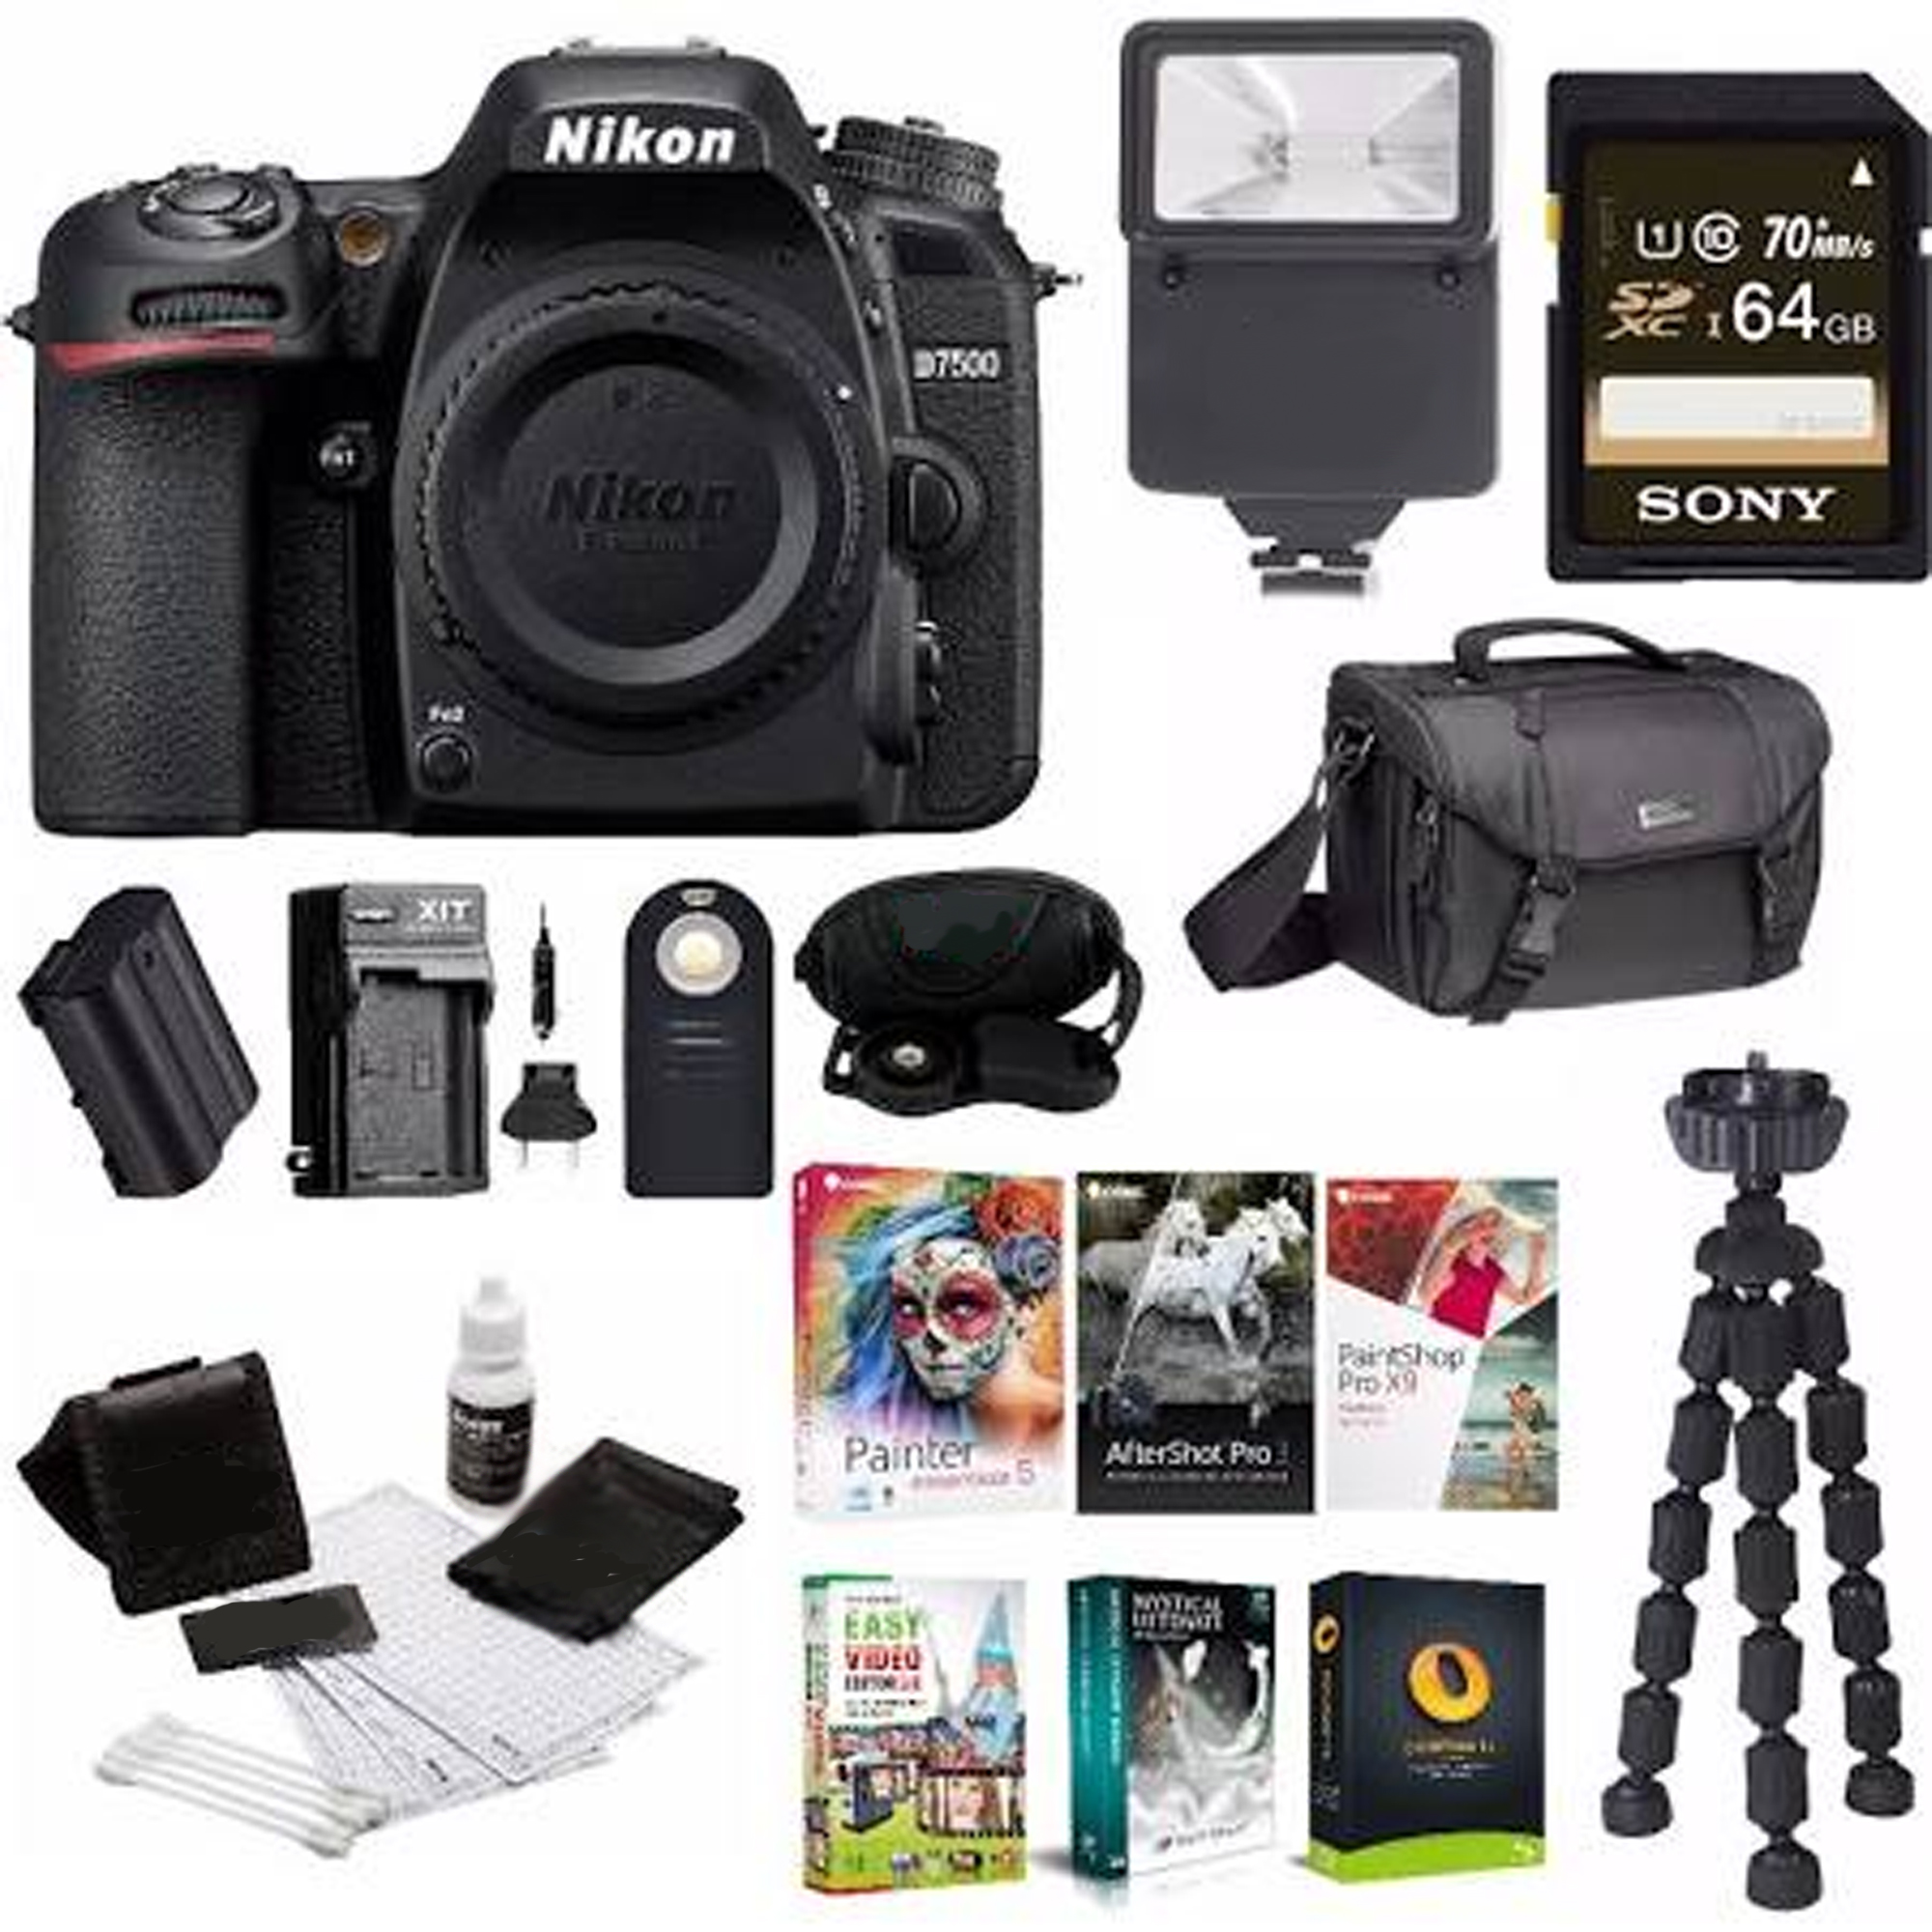 Nikon D7500 DSLR Camera Body with Nikon Bag w/ 64GB Card & Battery Bundle